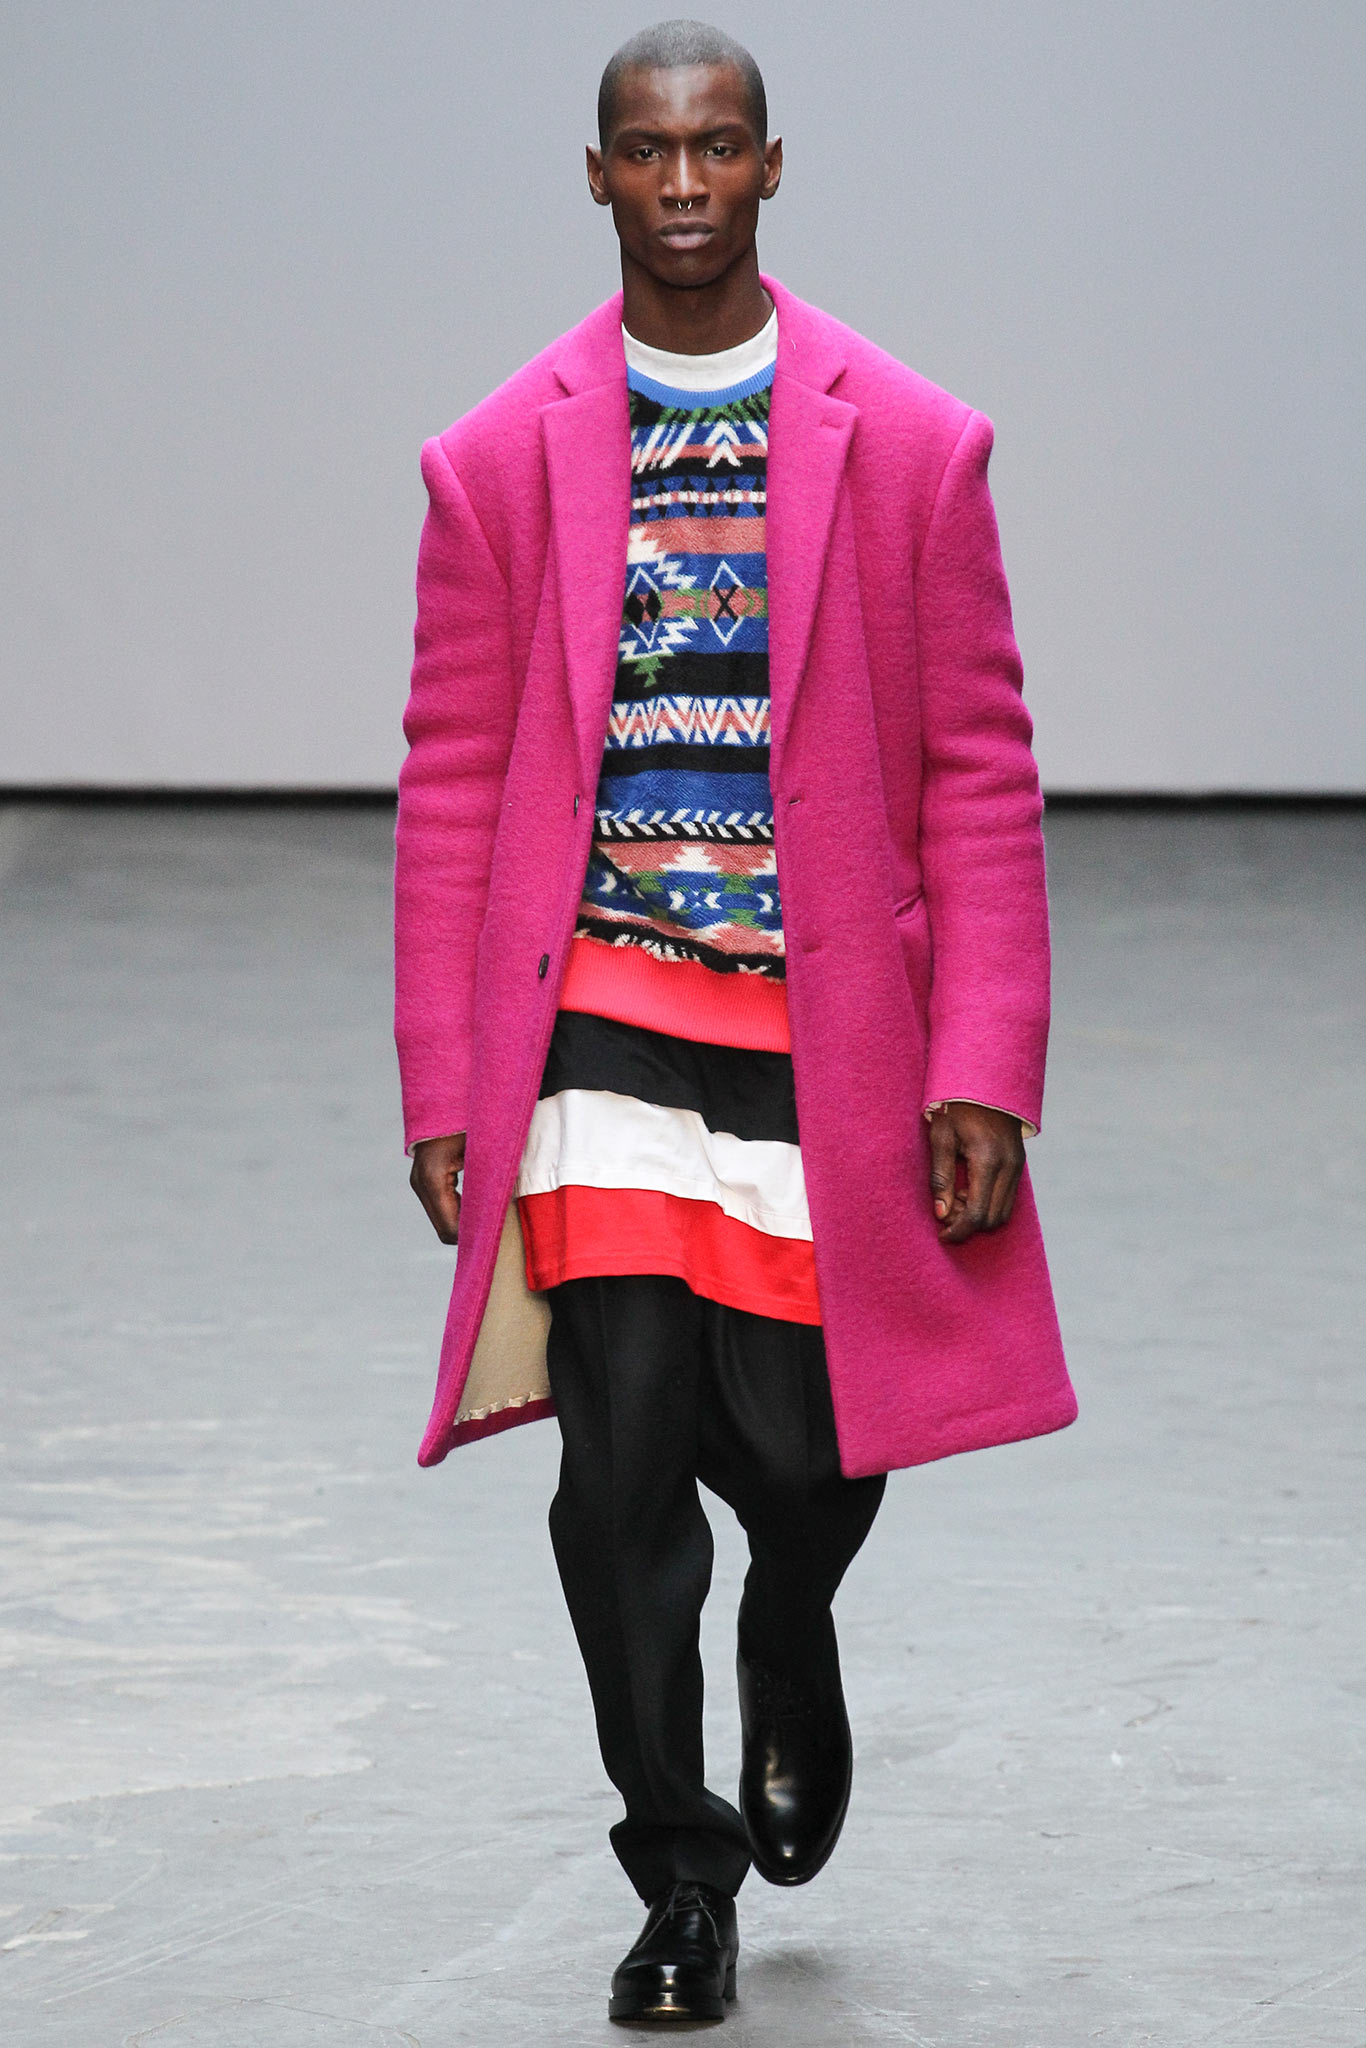 Men S Tribal Apparel Casely Hayford Aw15